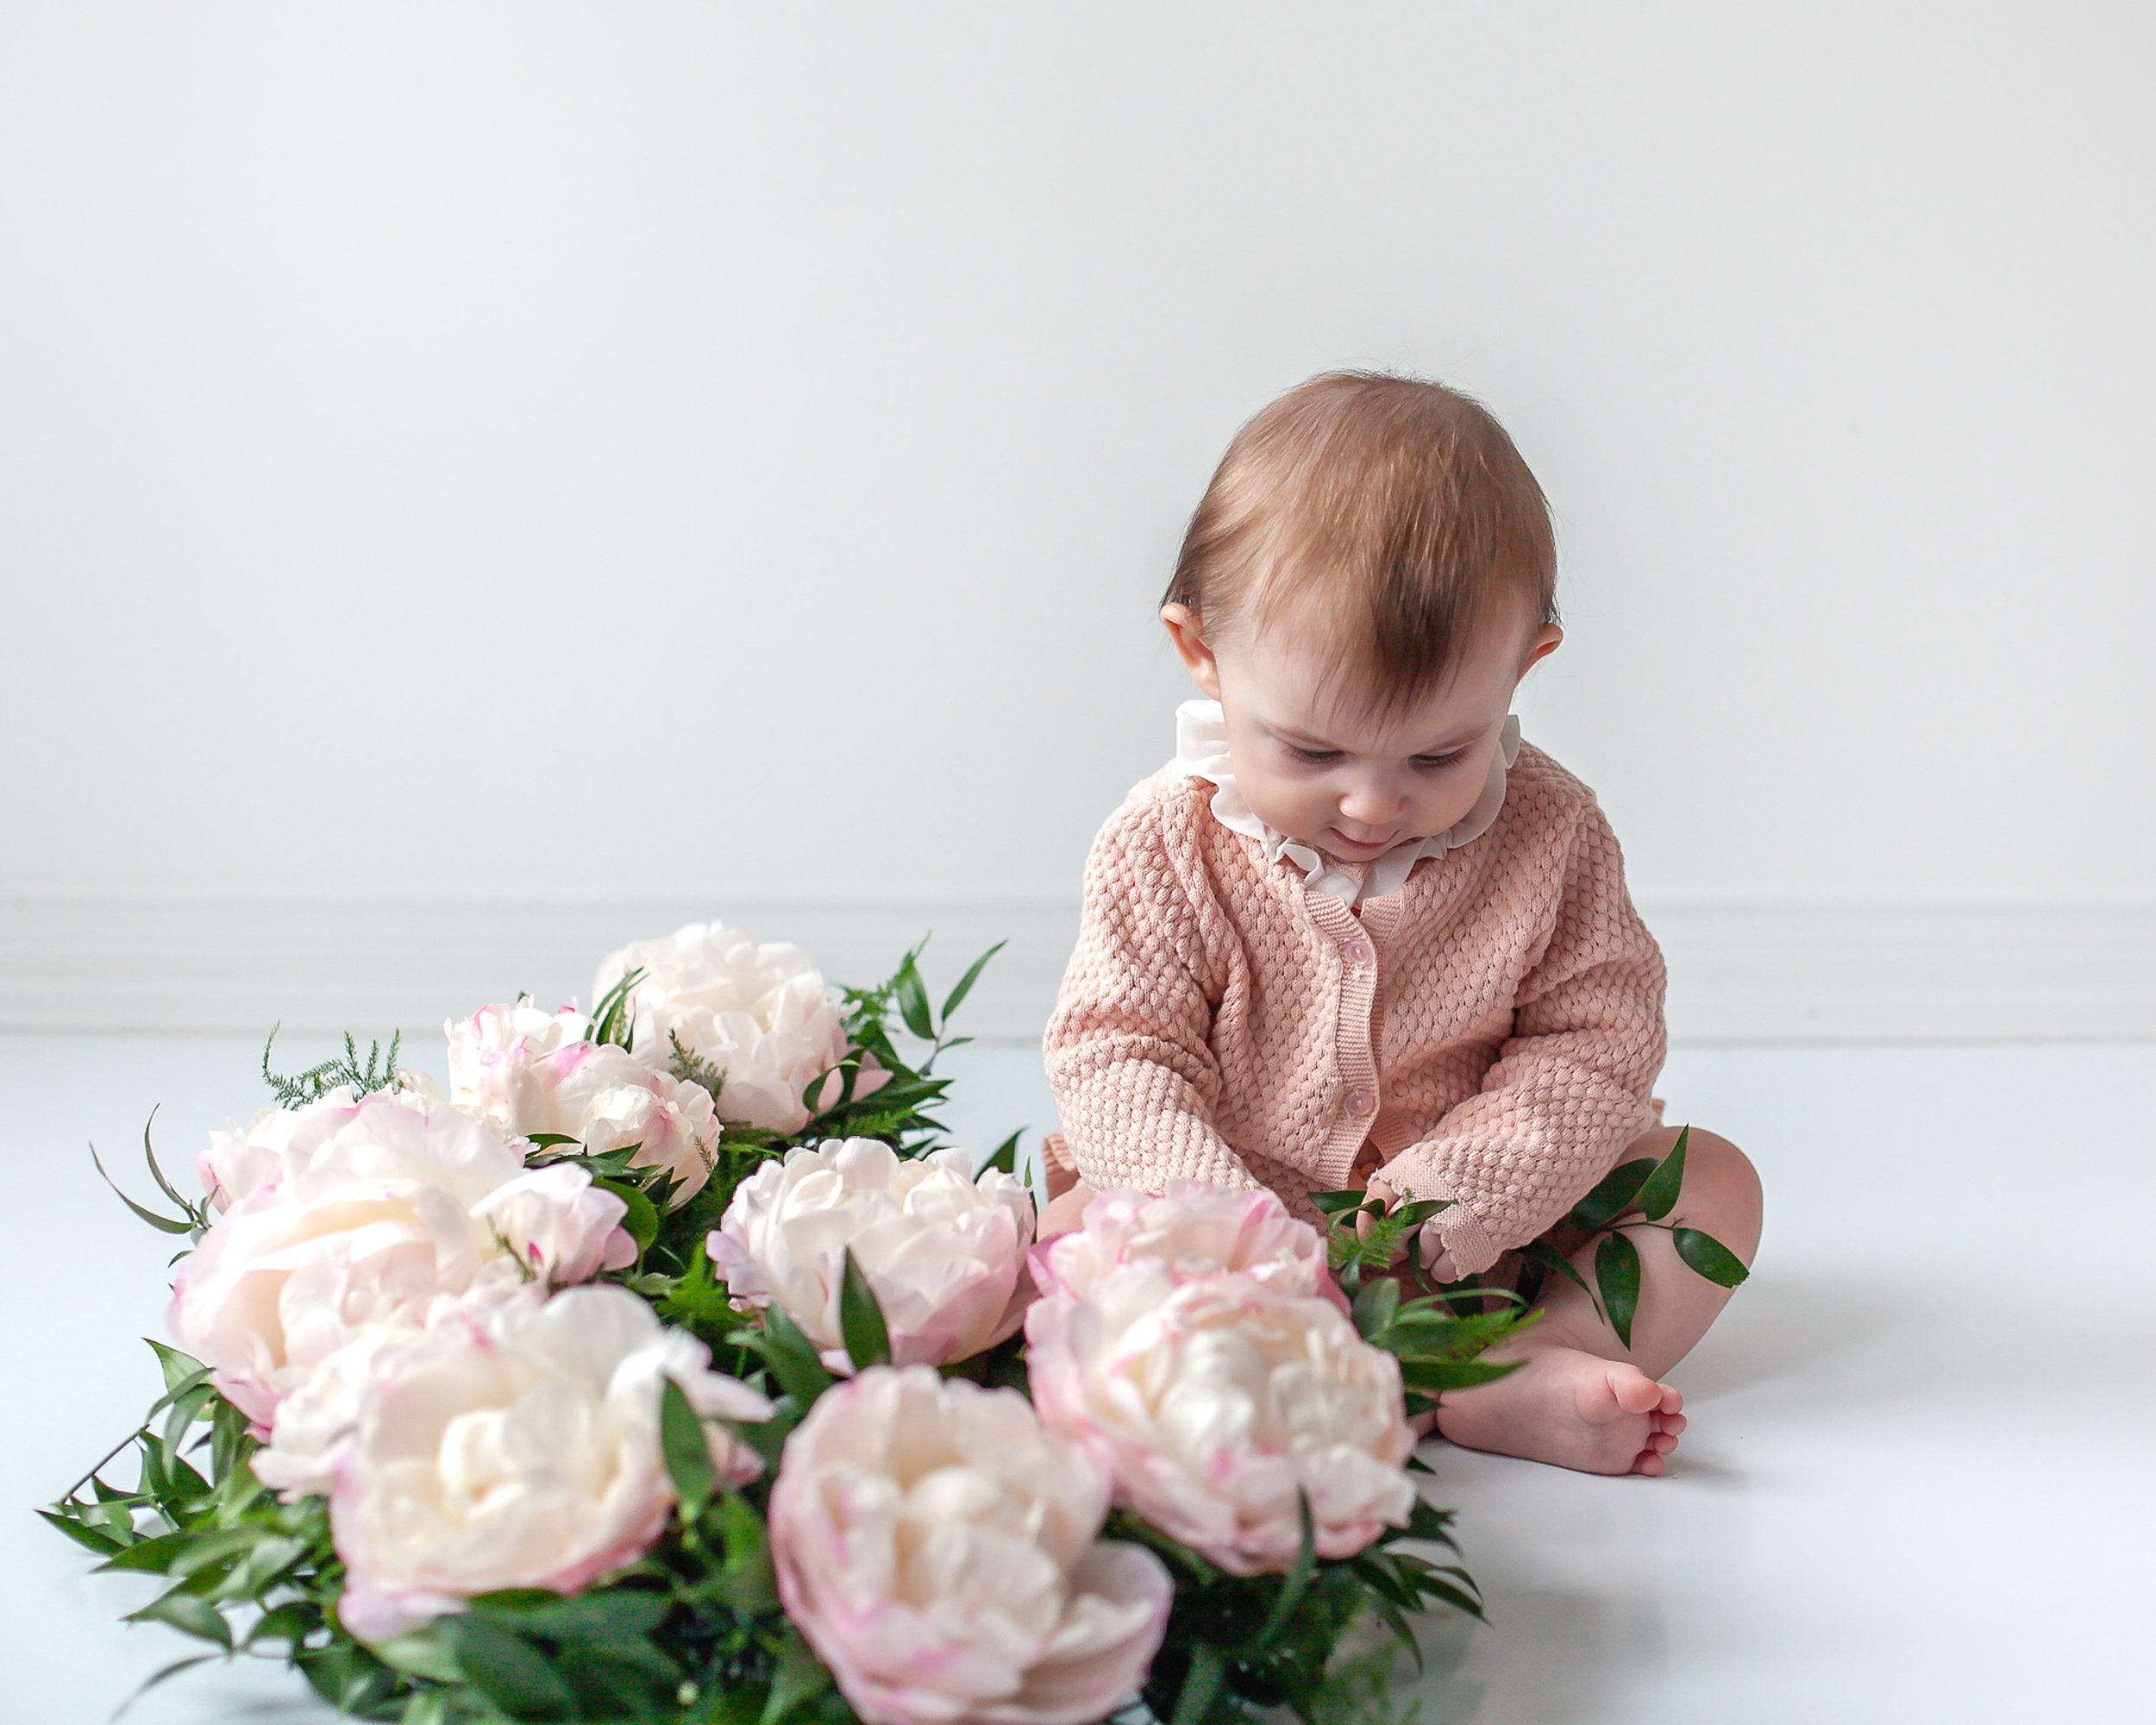 Oshawa_Ajax_DurhamRegion_Baby_Floral_Milestone_Photographer_Petra_King_Photography